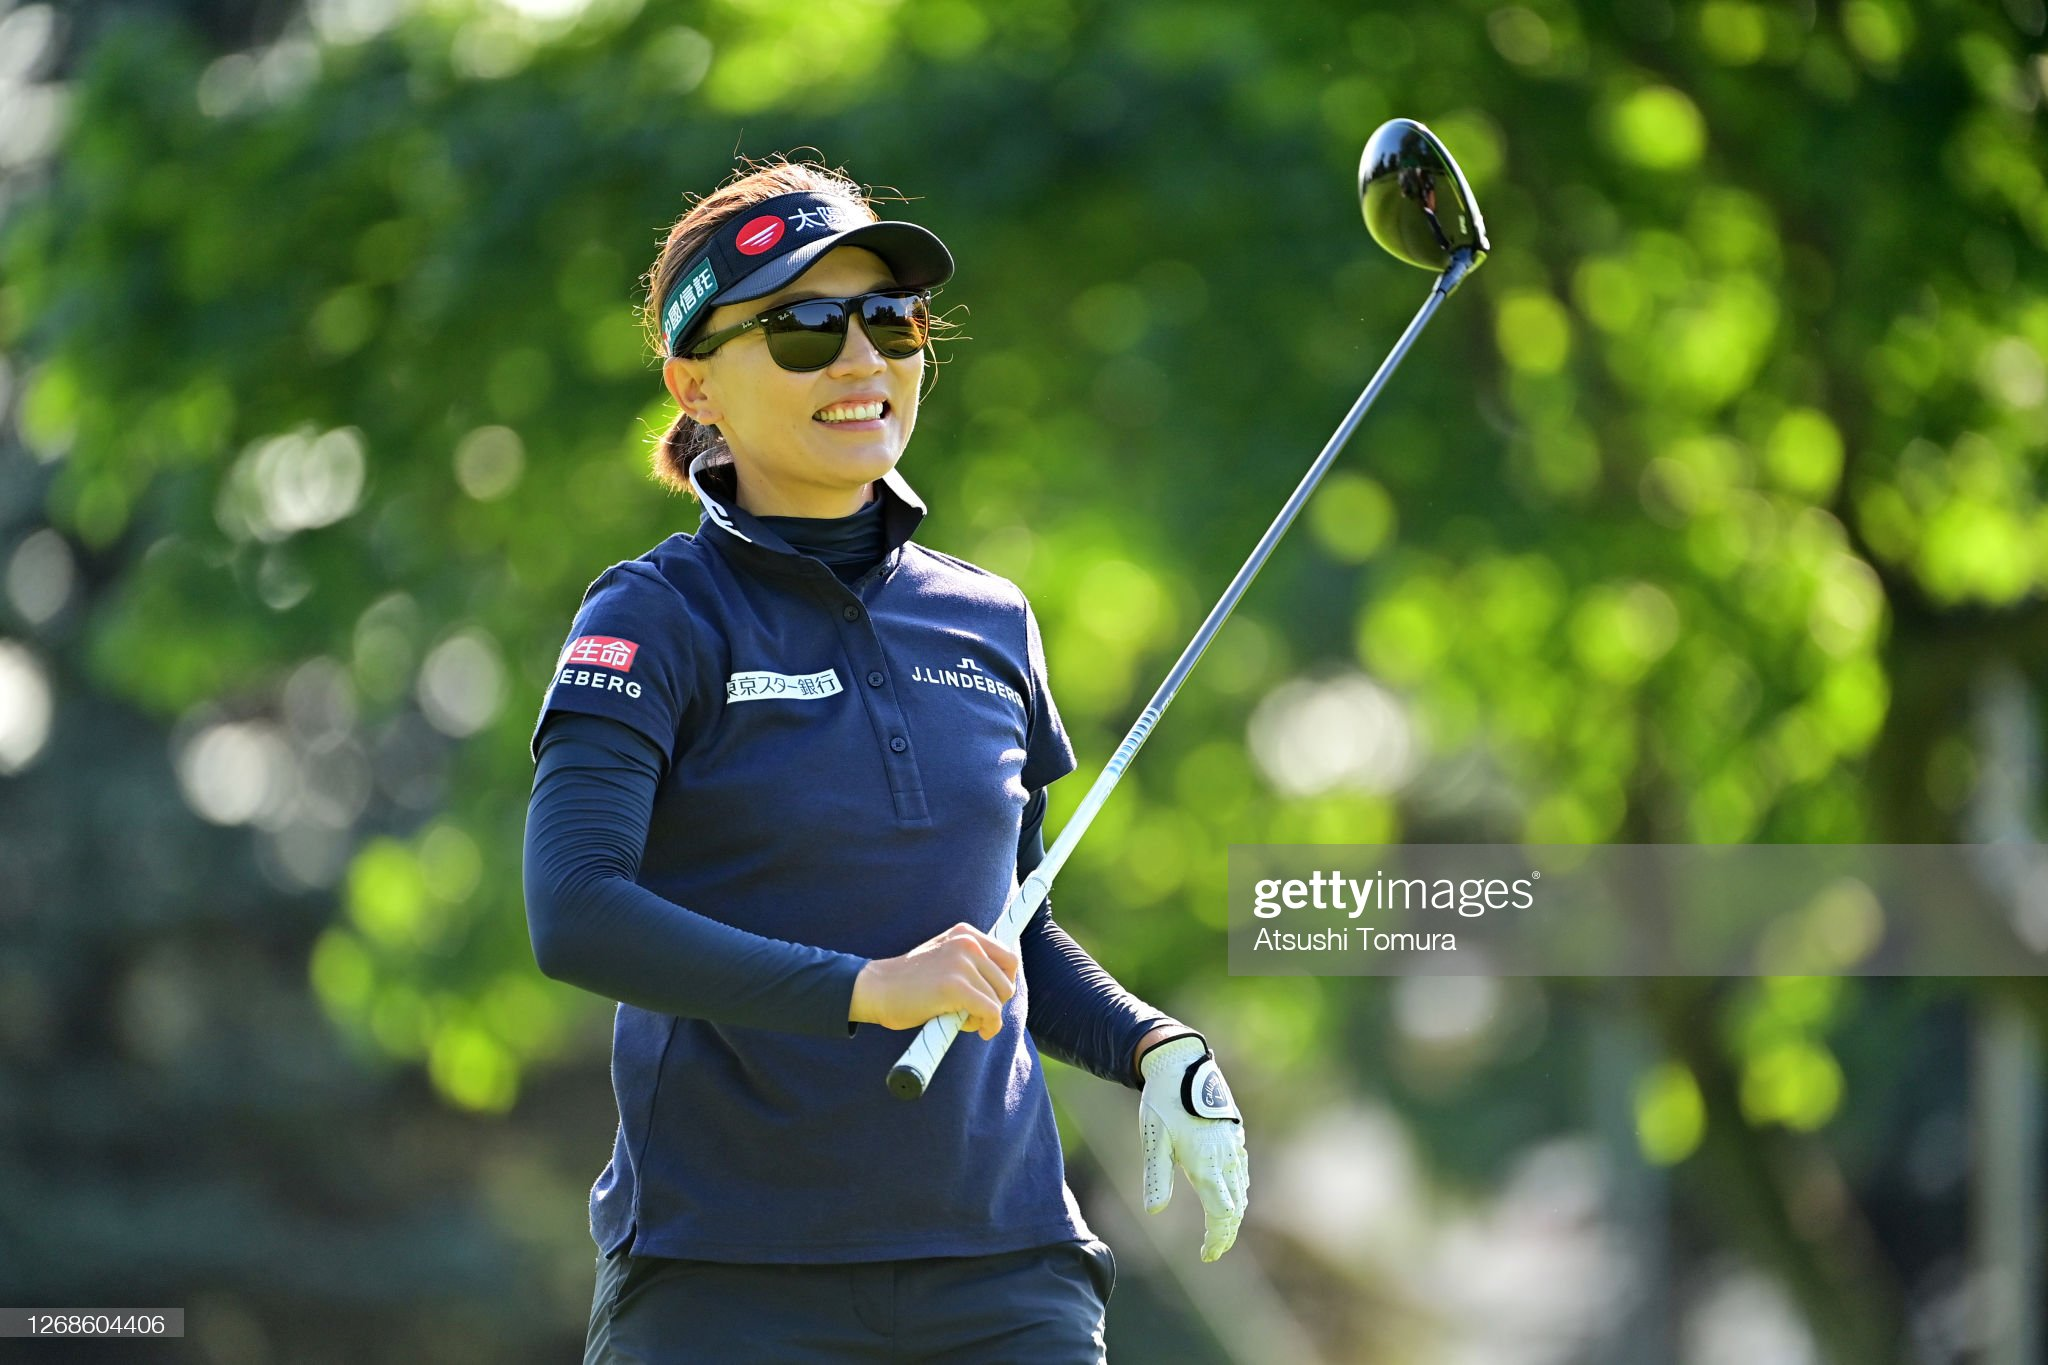 https://media.gettyimages.com/photos/teresa-lu-of-chinese-taipei-smiles-on-the-1st-tee-during-a-practice-picture-id1268604406?s=2048x2048